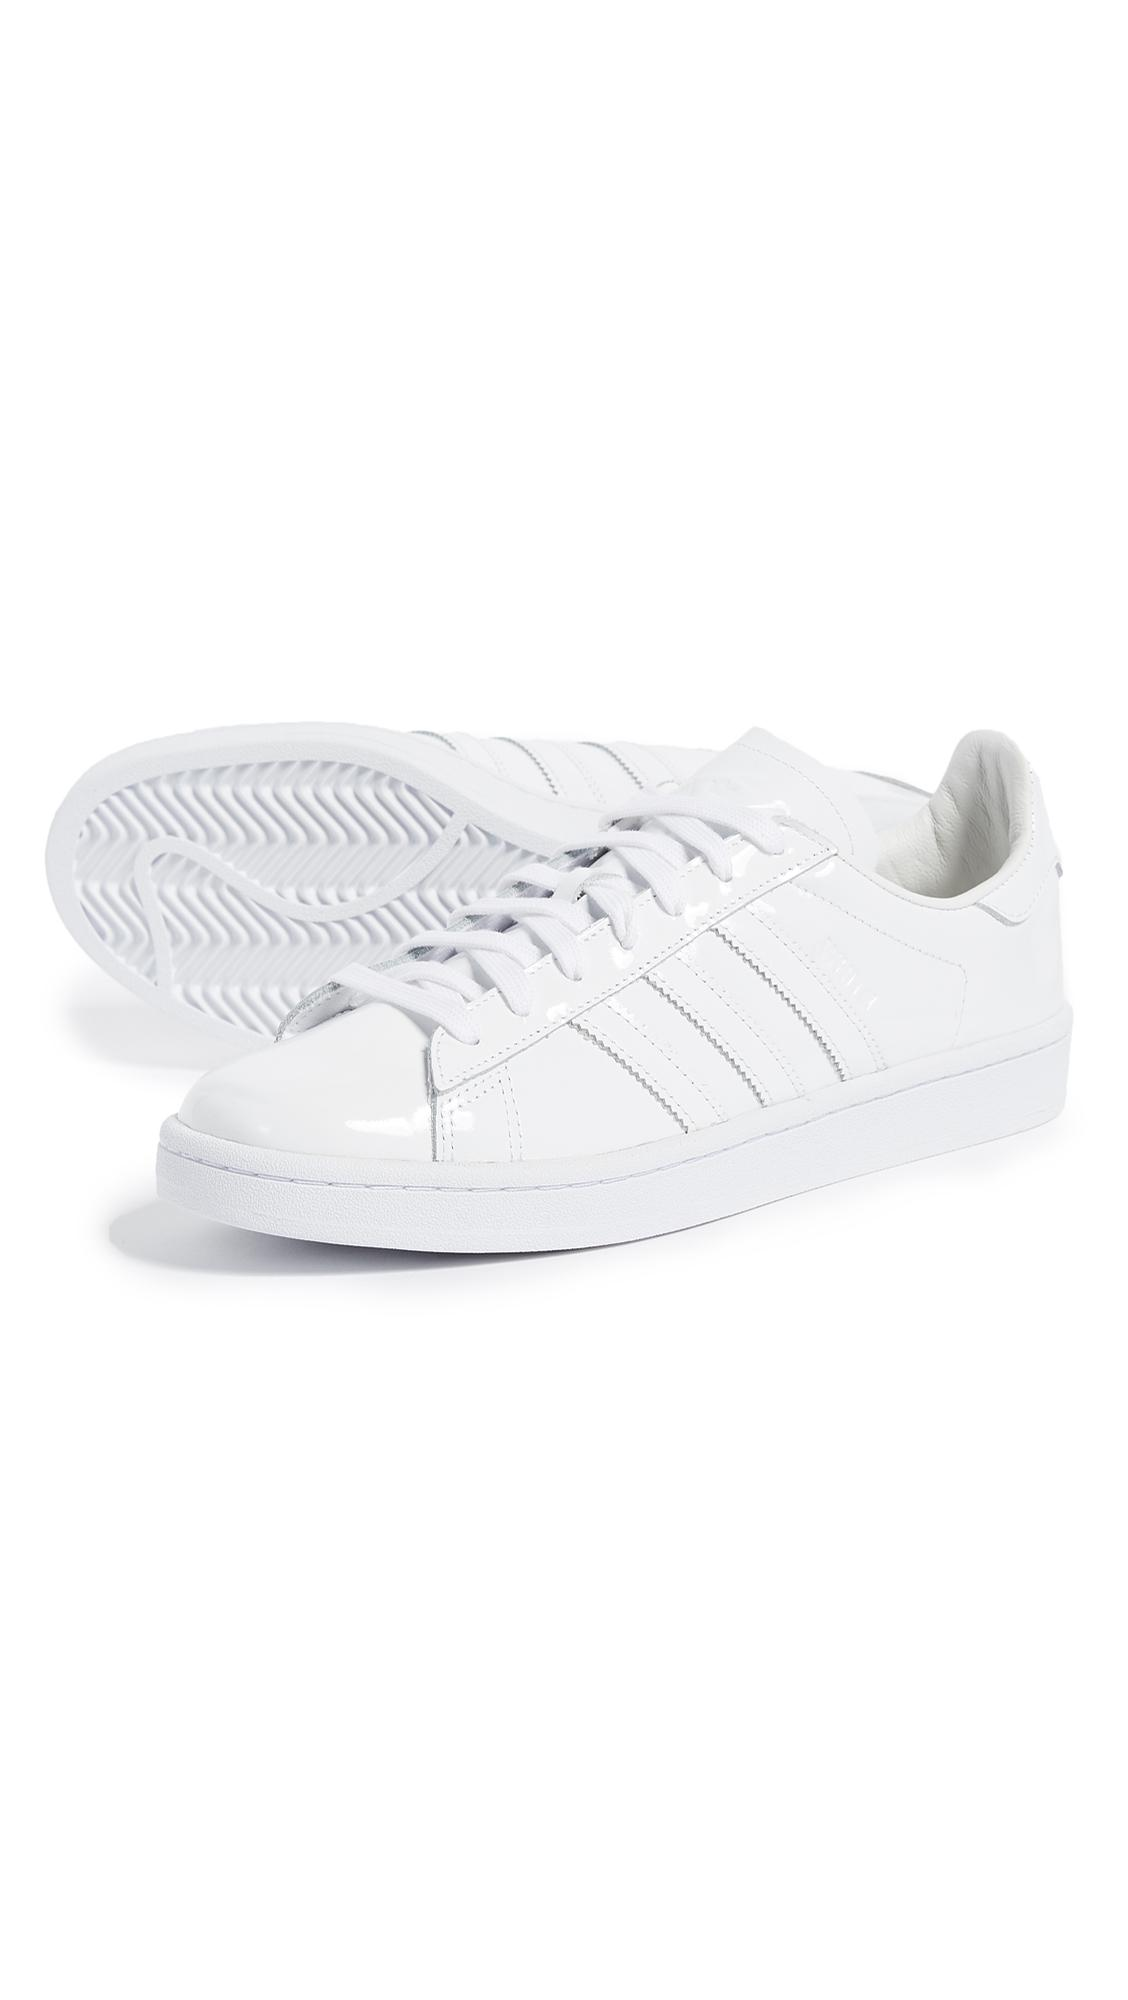 821024735313 Lyst - White Mountaineering X Adidas Originals Campus 8 Sneakers in ...